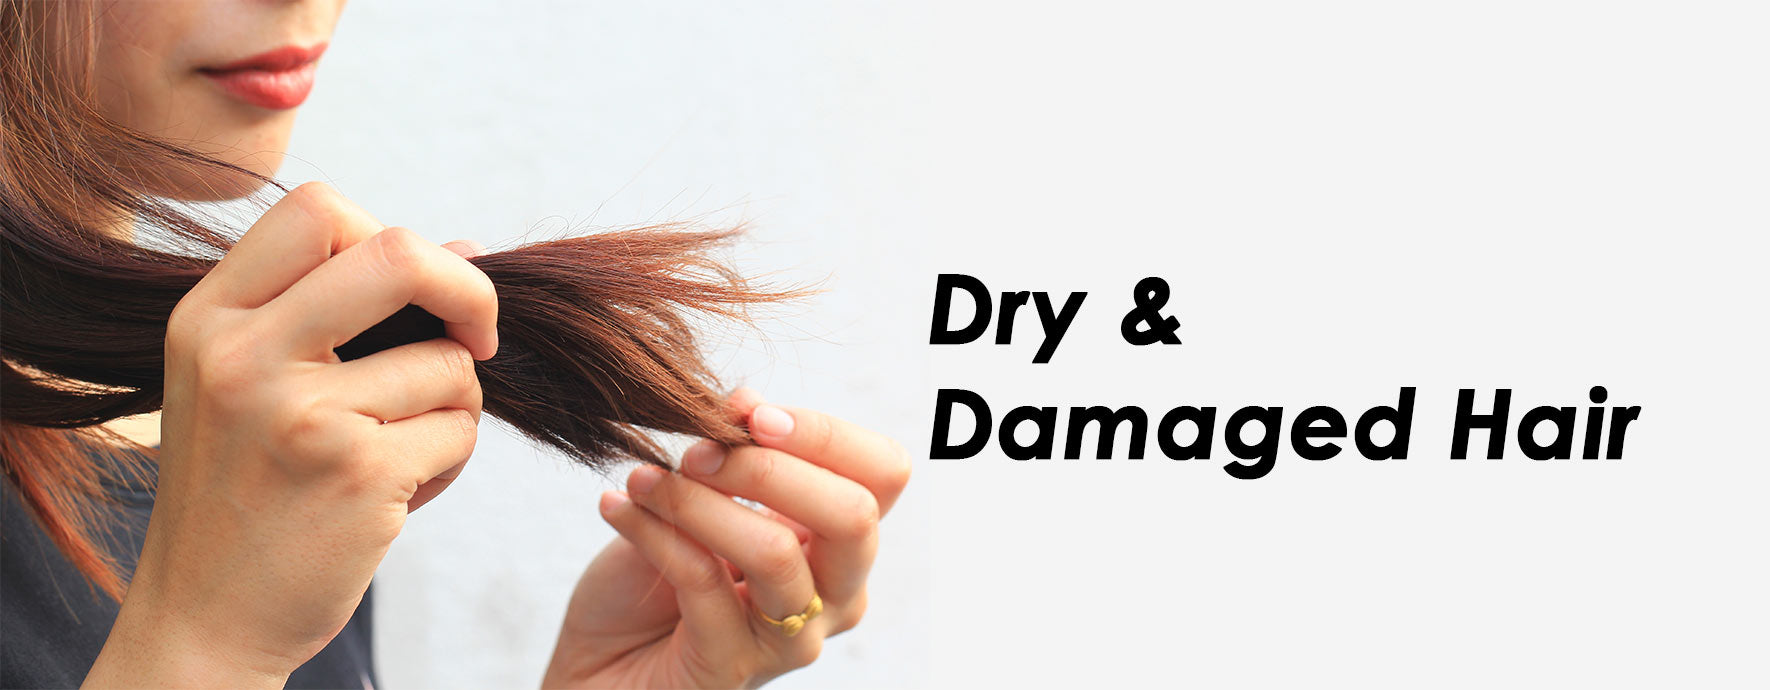 CONCERN - Dry & Damaged Hair